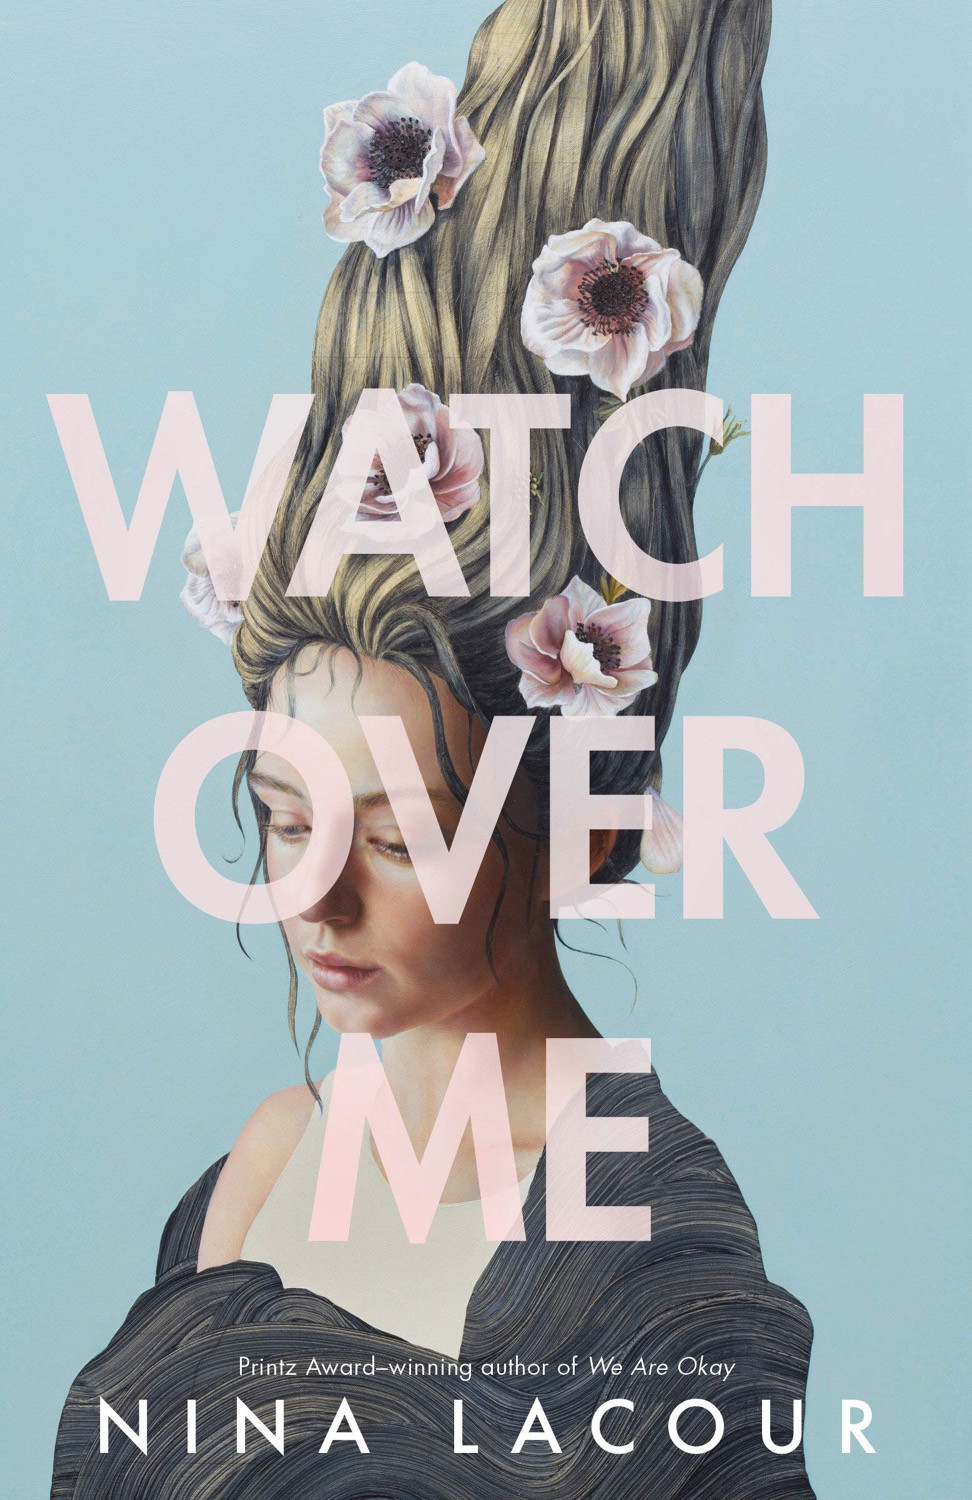 Watch Over Me by Nina LaCour - Book Cover | 15 YA Books Out In September 2020